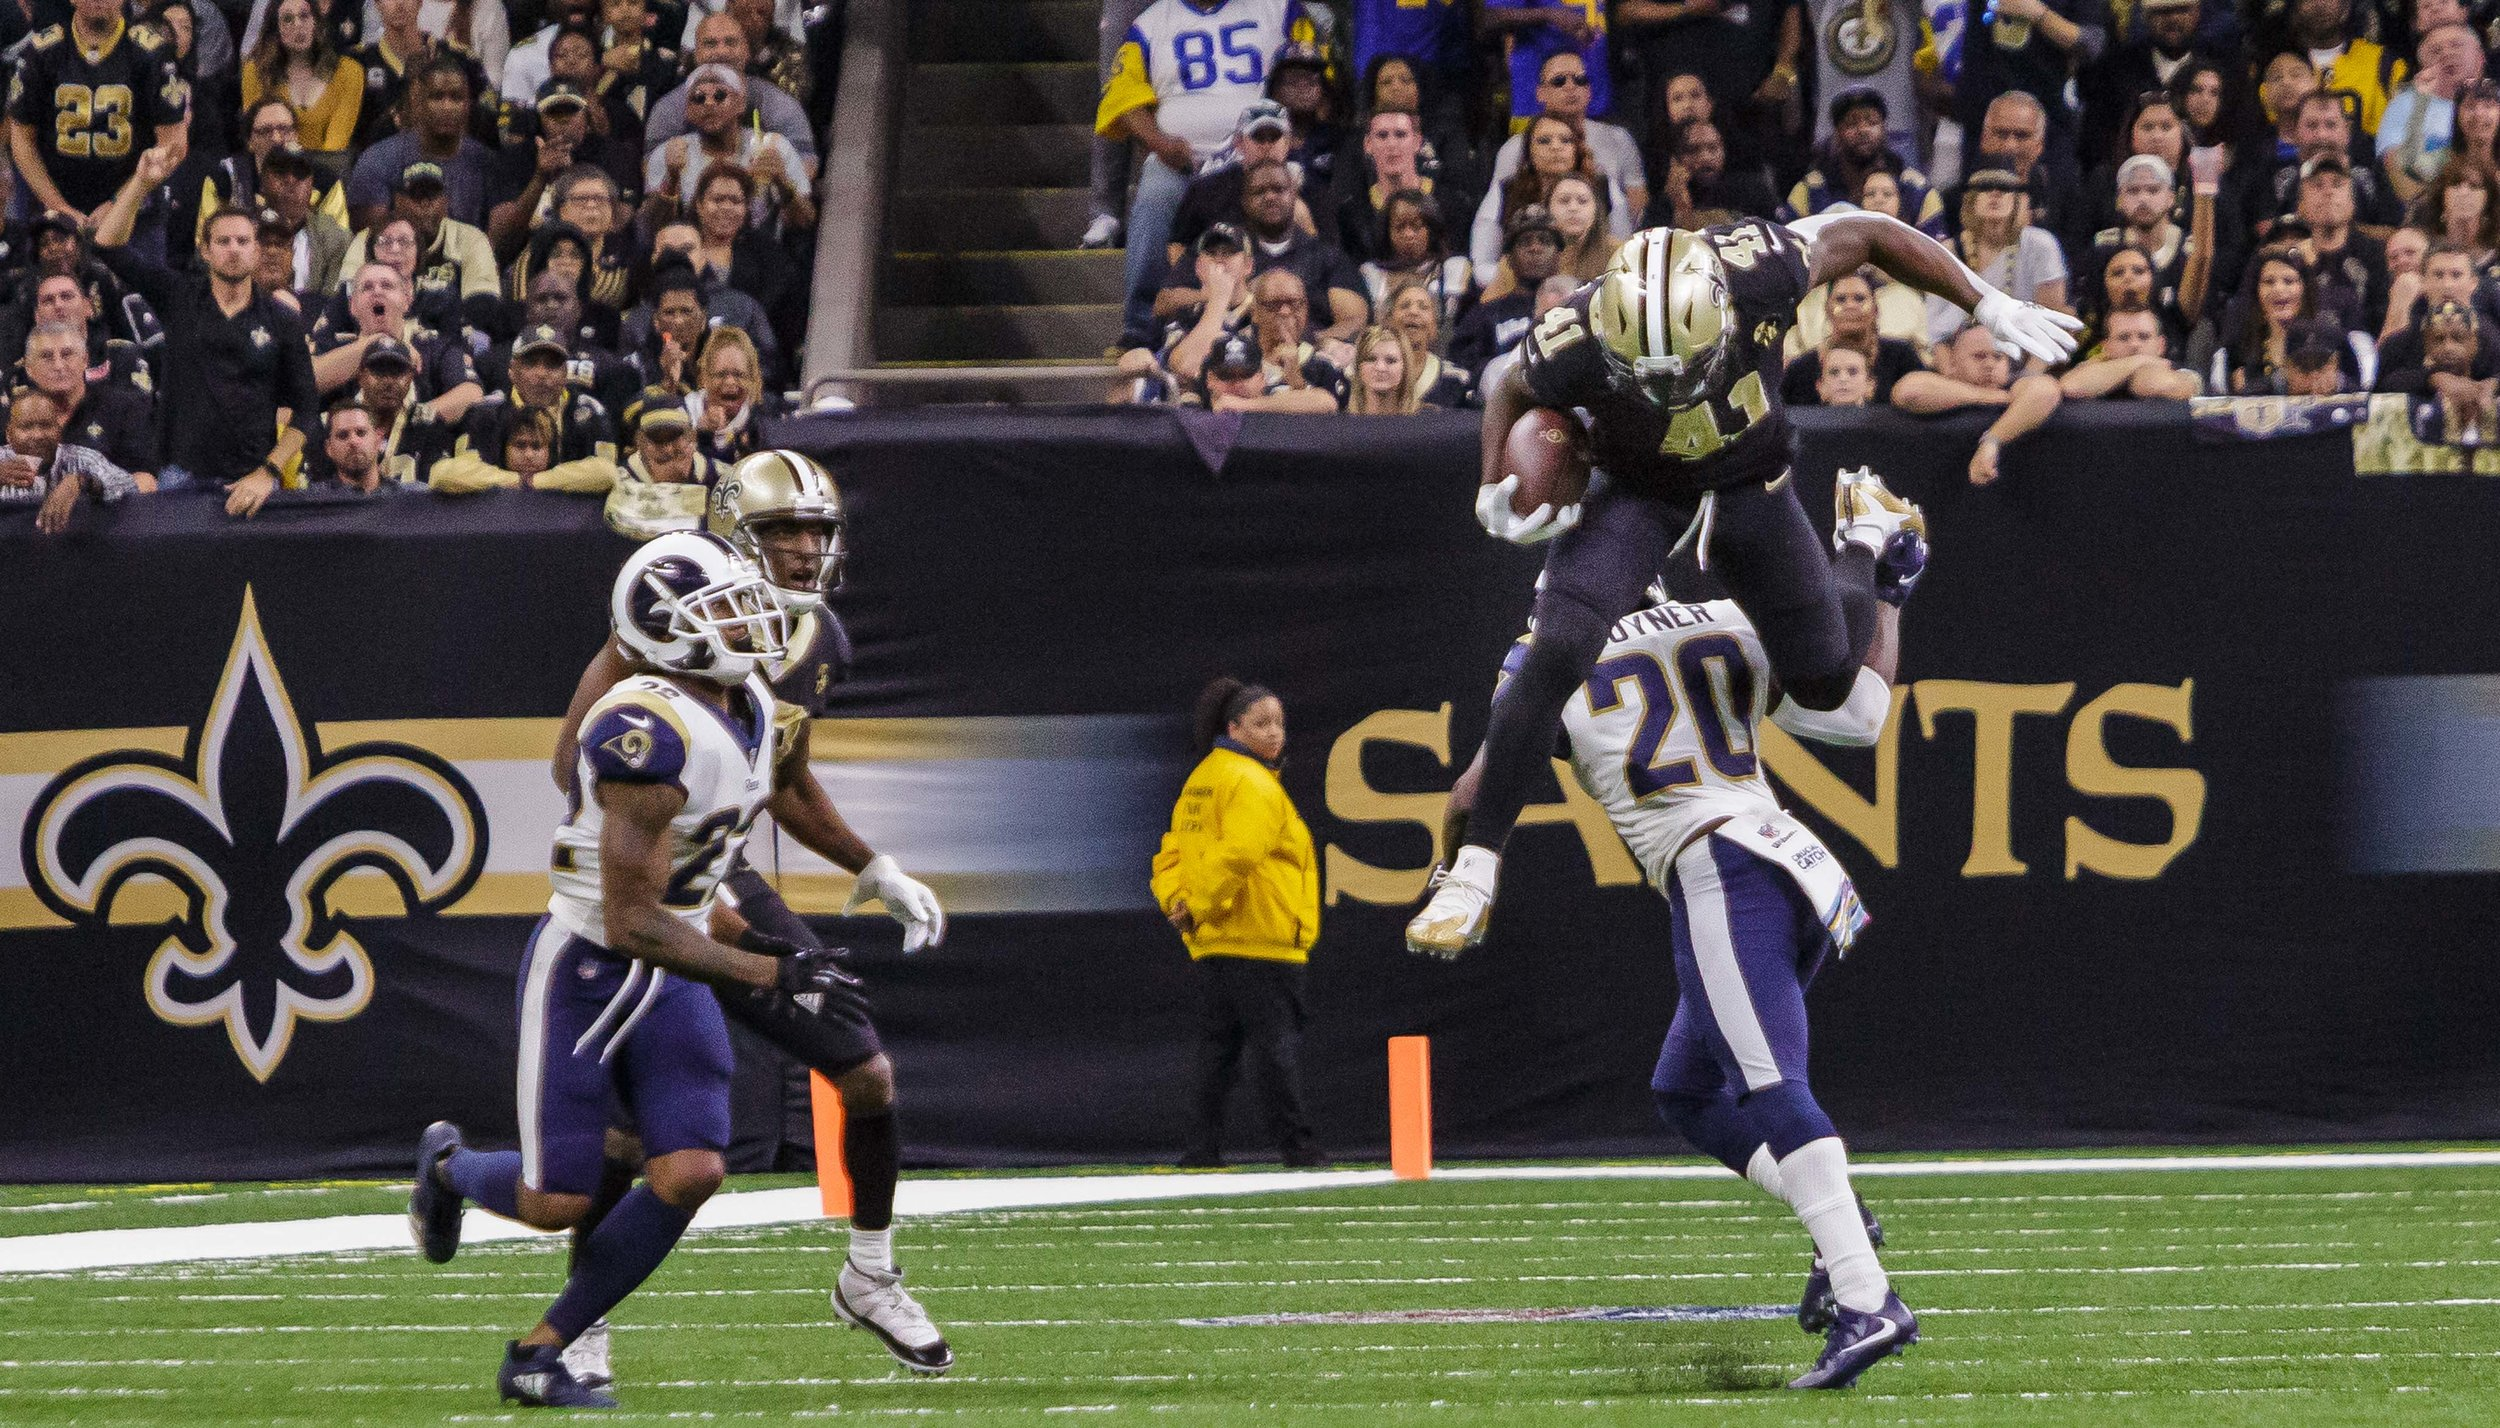 New OrleansSaintsrunning back Alvin Kamara (41) leaps over Los Angeles Rams free safety Lamarcus Joyner (20) during the first second half of an NFL football game against the Los Angeles Rams in New Orleans, La. Sunday, Nov. 4, 2018.